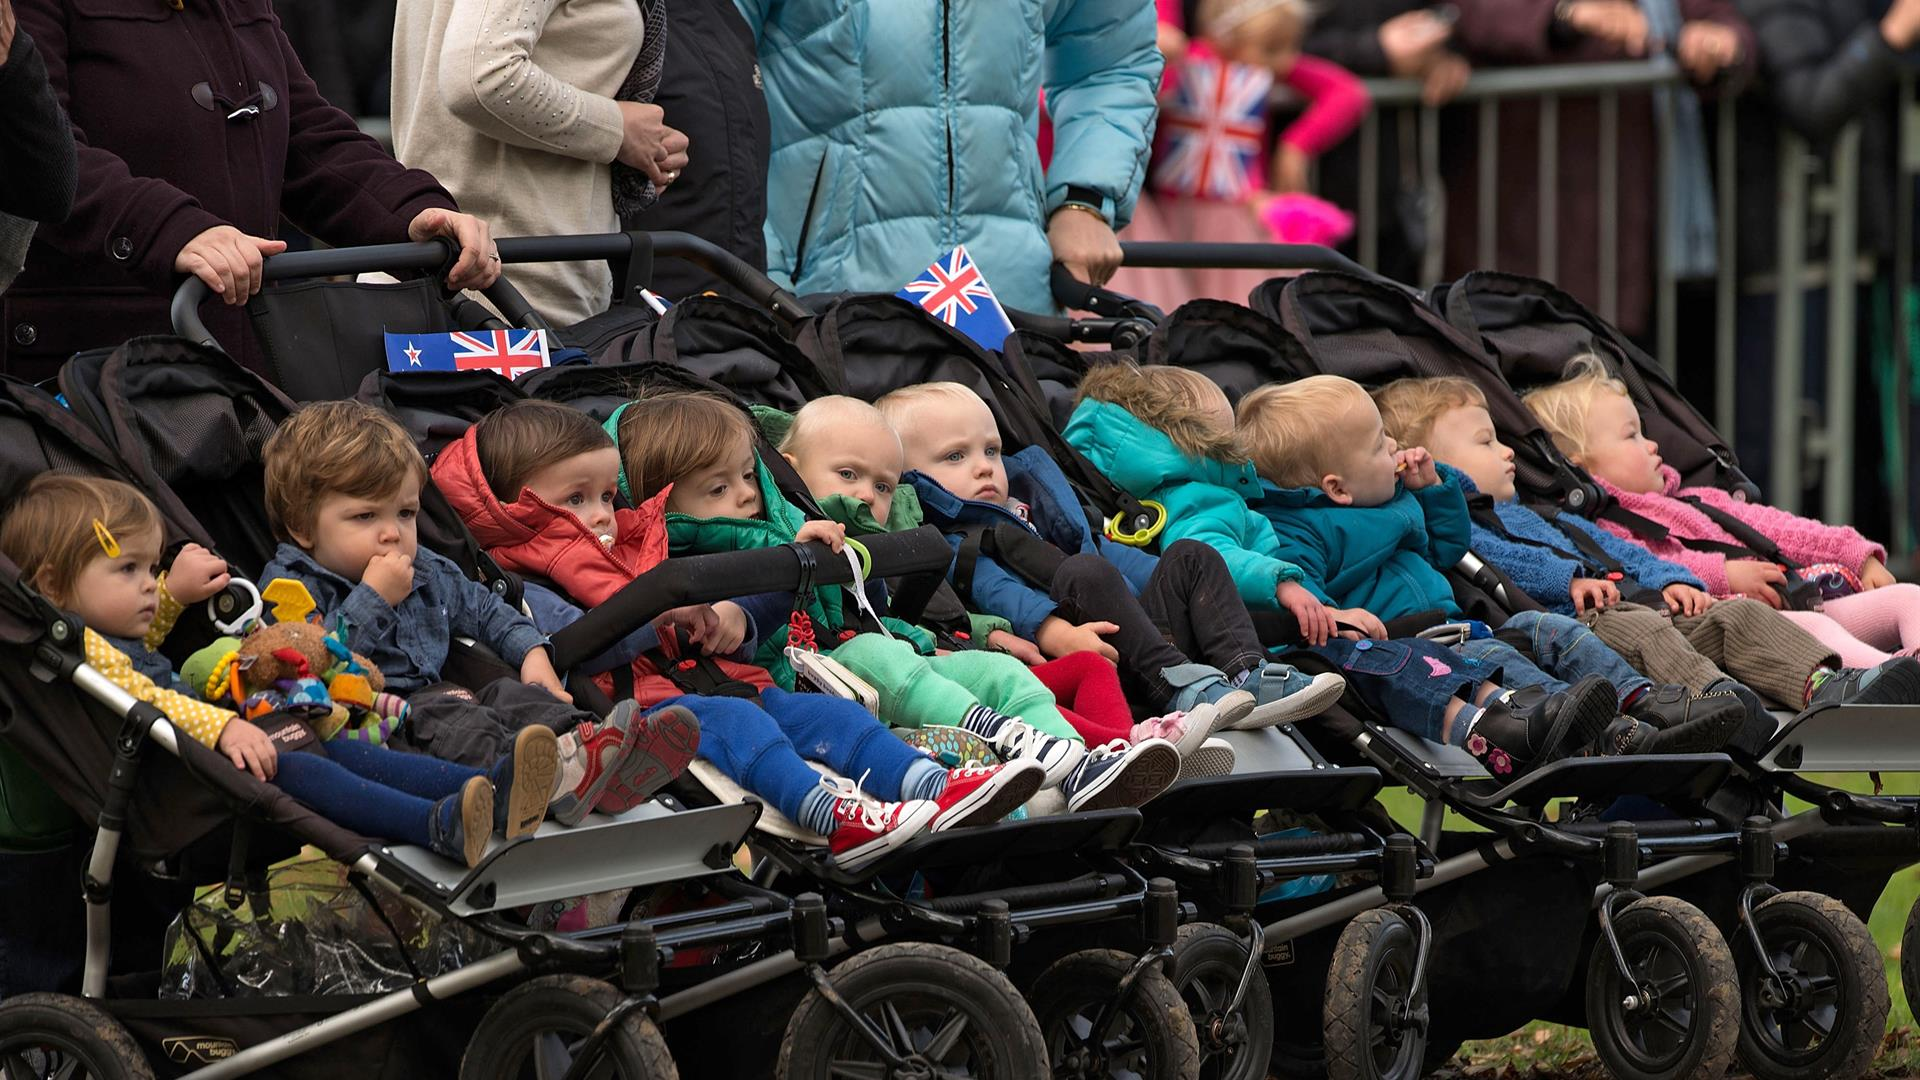 Famiglia Passeggini Marty Melville:AFP:Getty Images